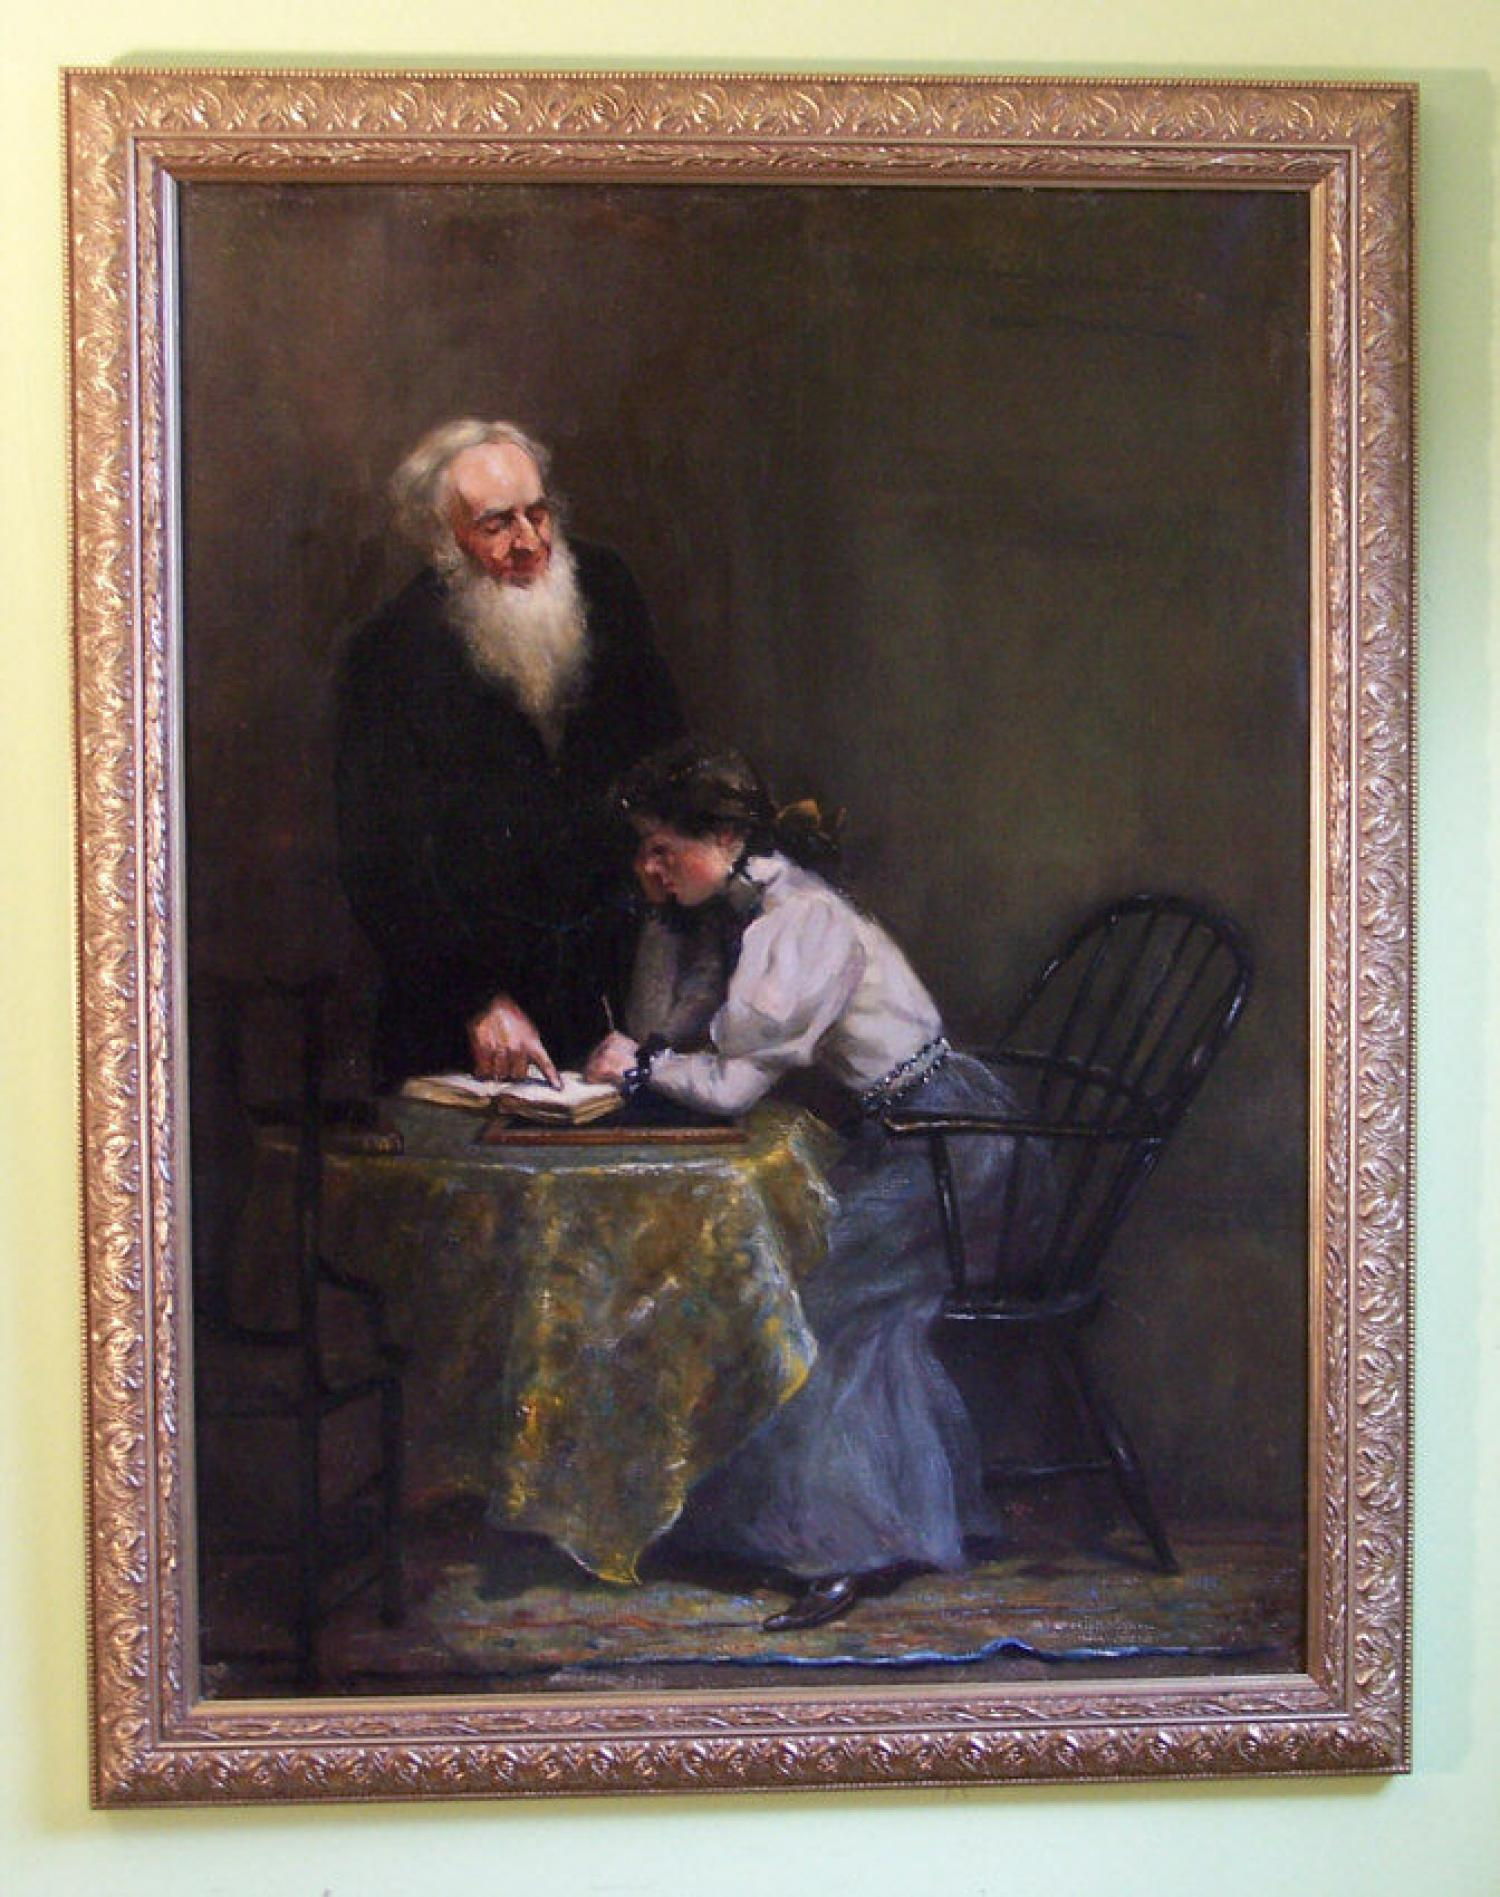 Fannie Burr painting of her sister Jennie and her teacher c1880